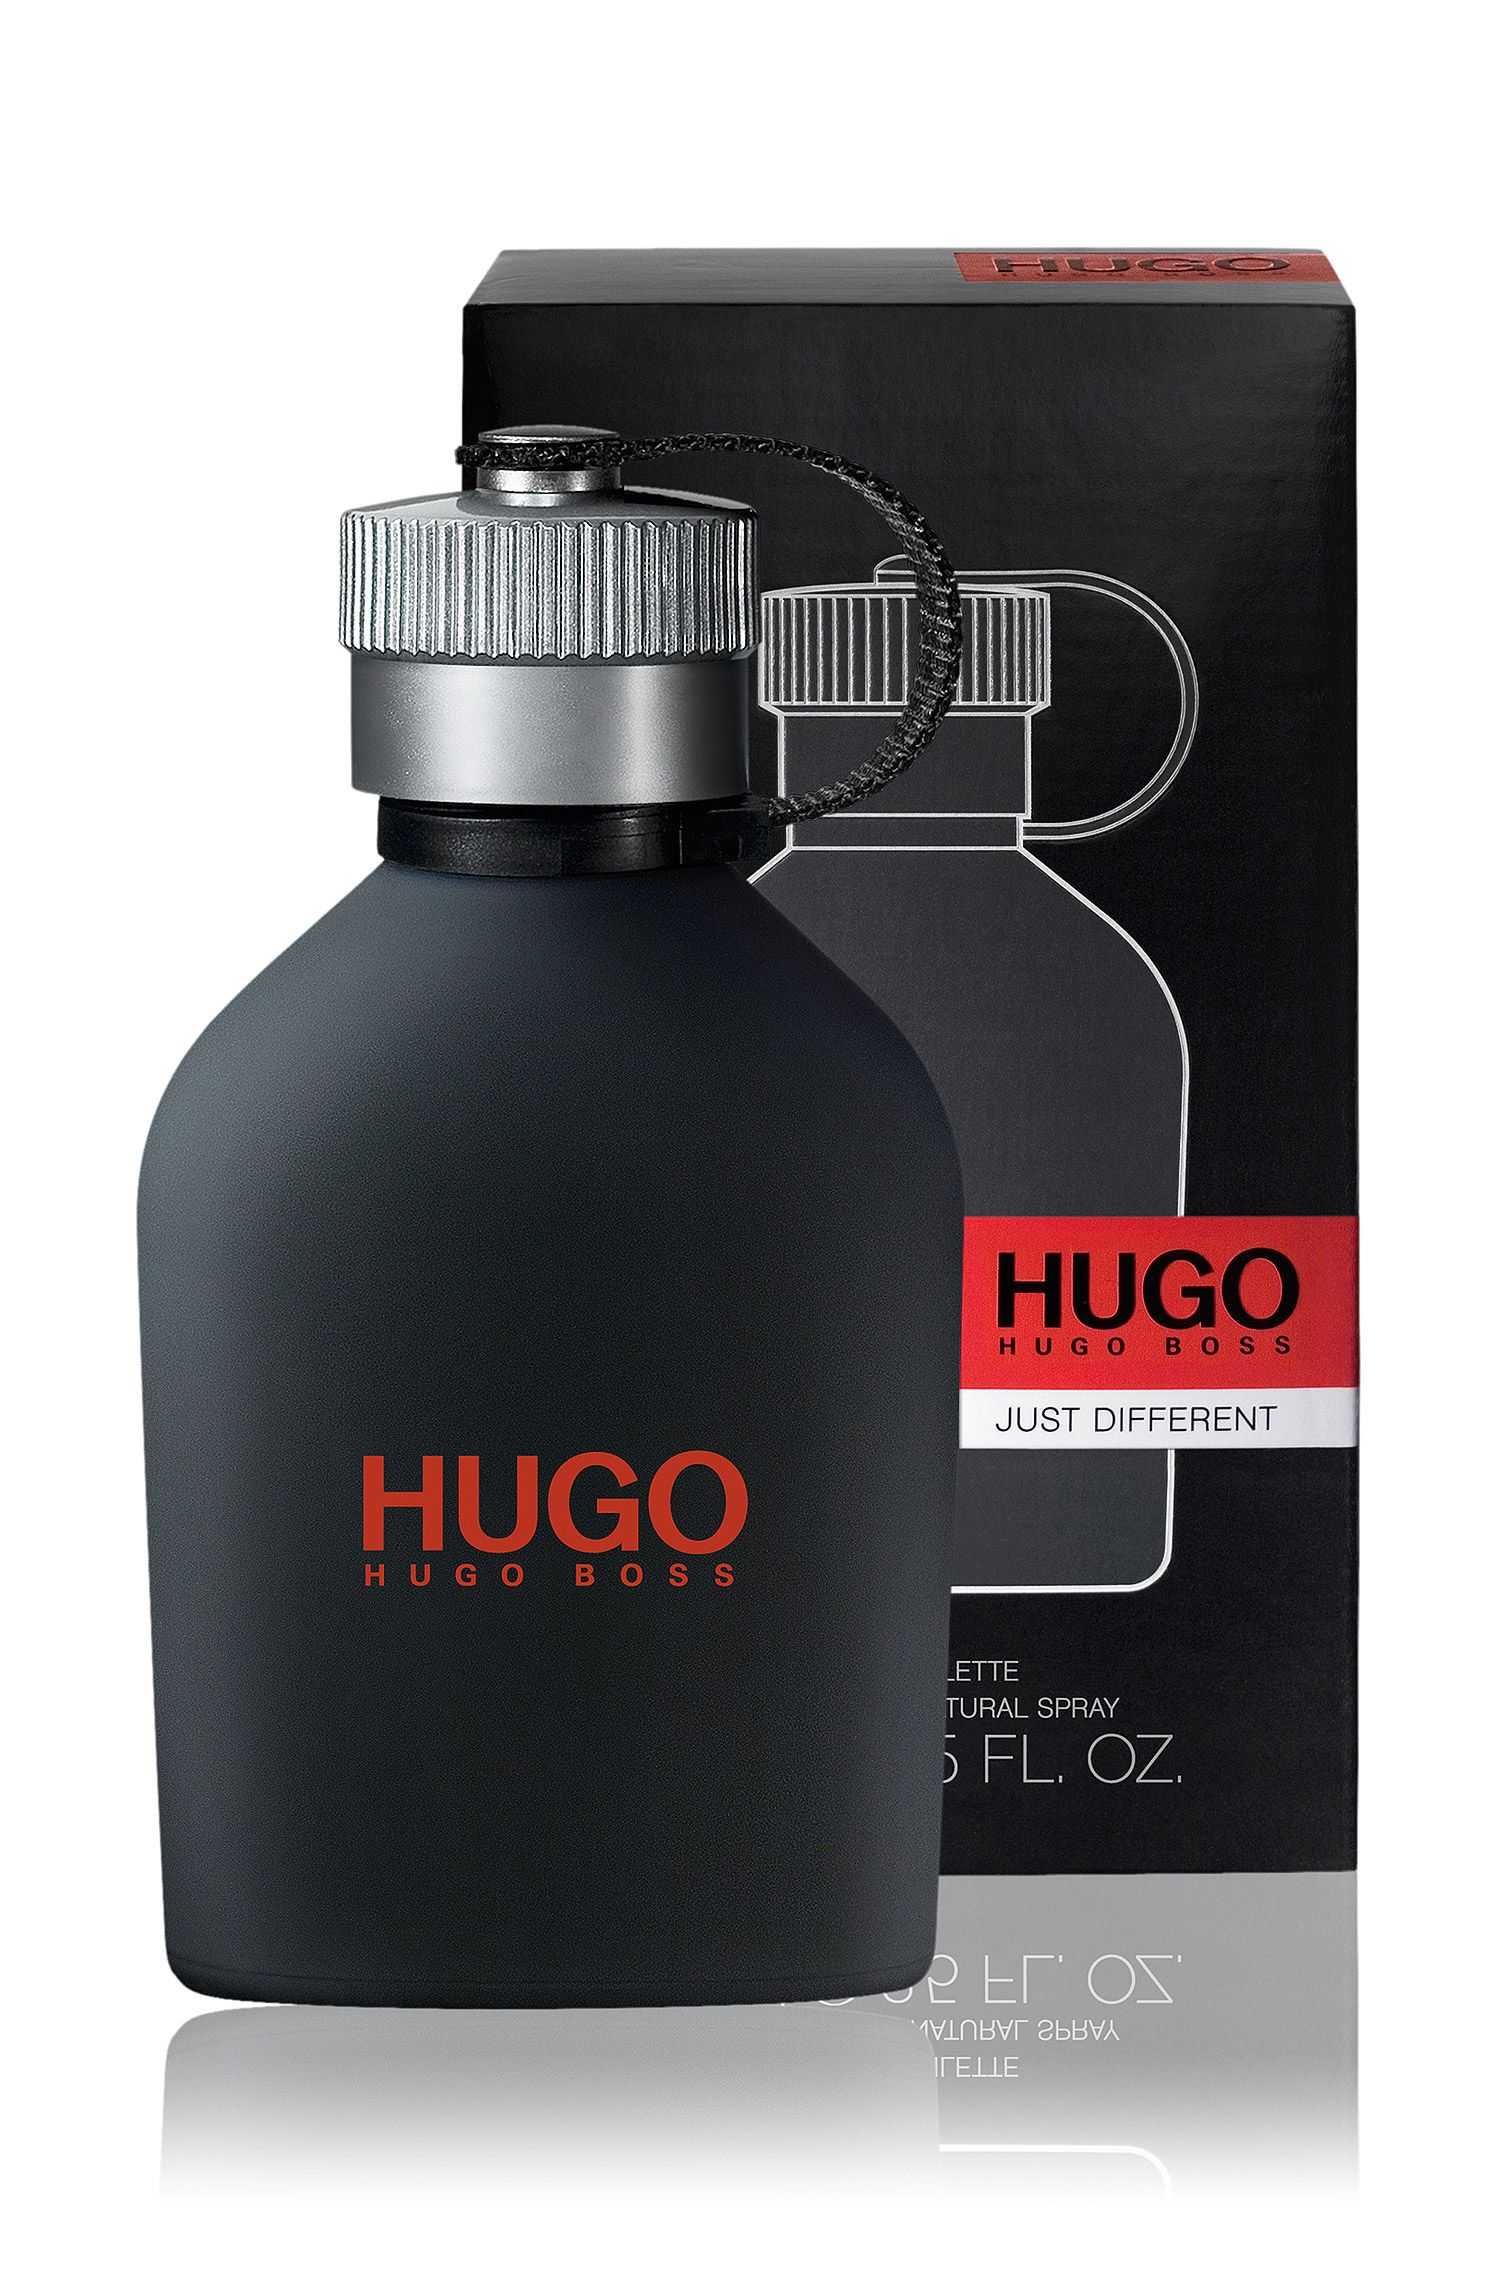 Eau de toilette 'HUGO Just Different' 75 ml